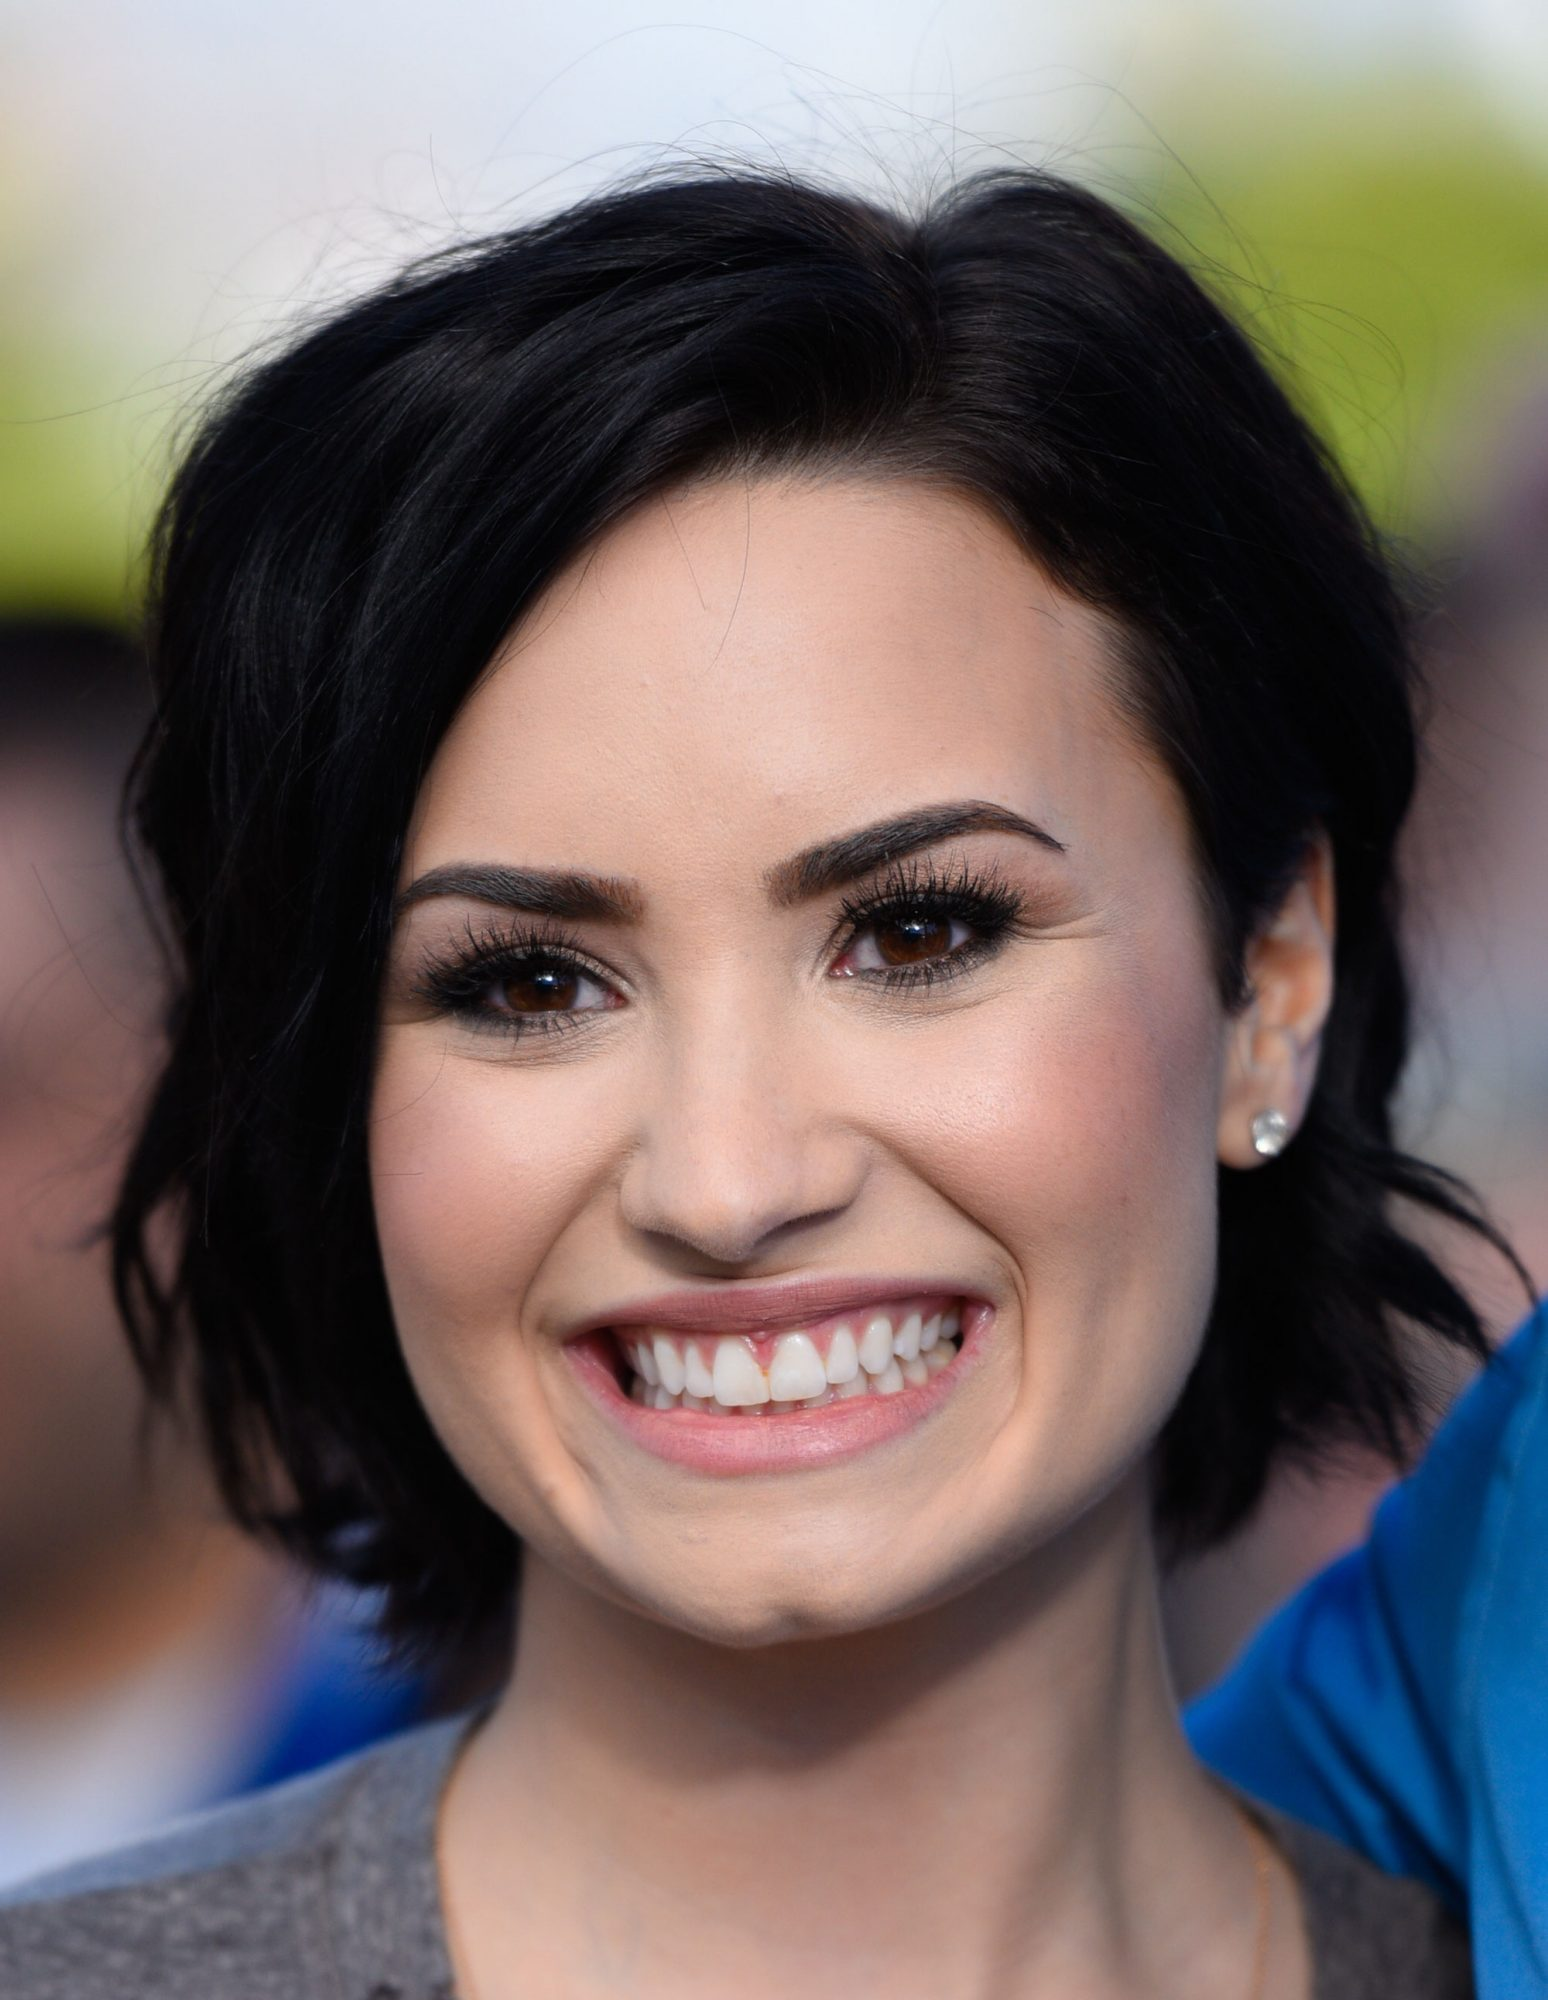 Demi Lovato Just Shared an Unretouched Underwear Selfie